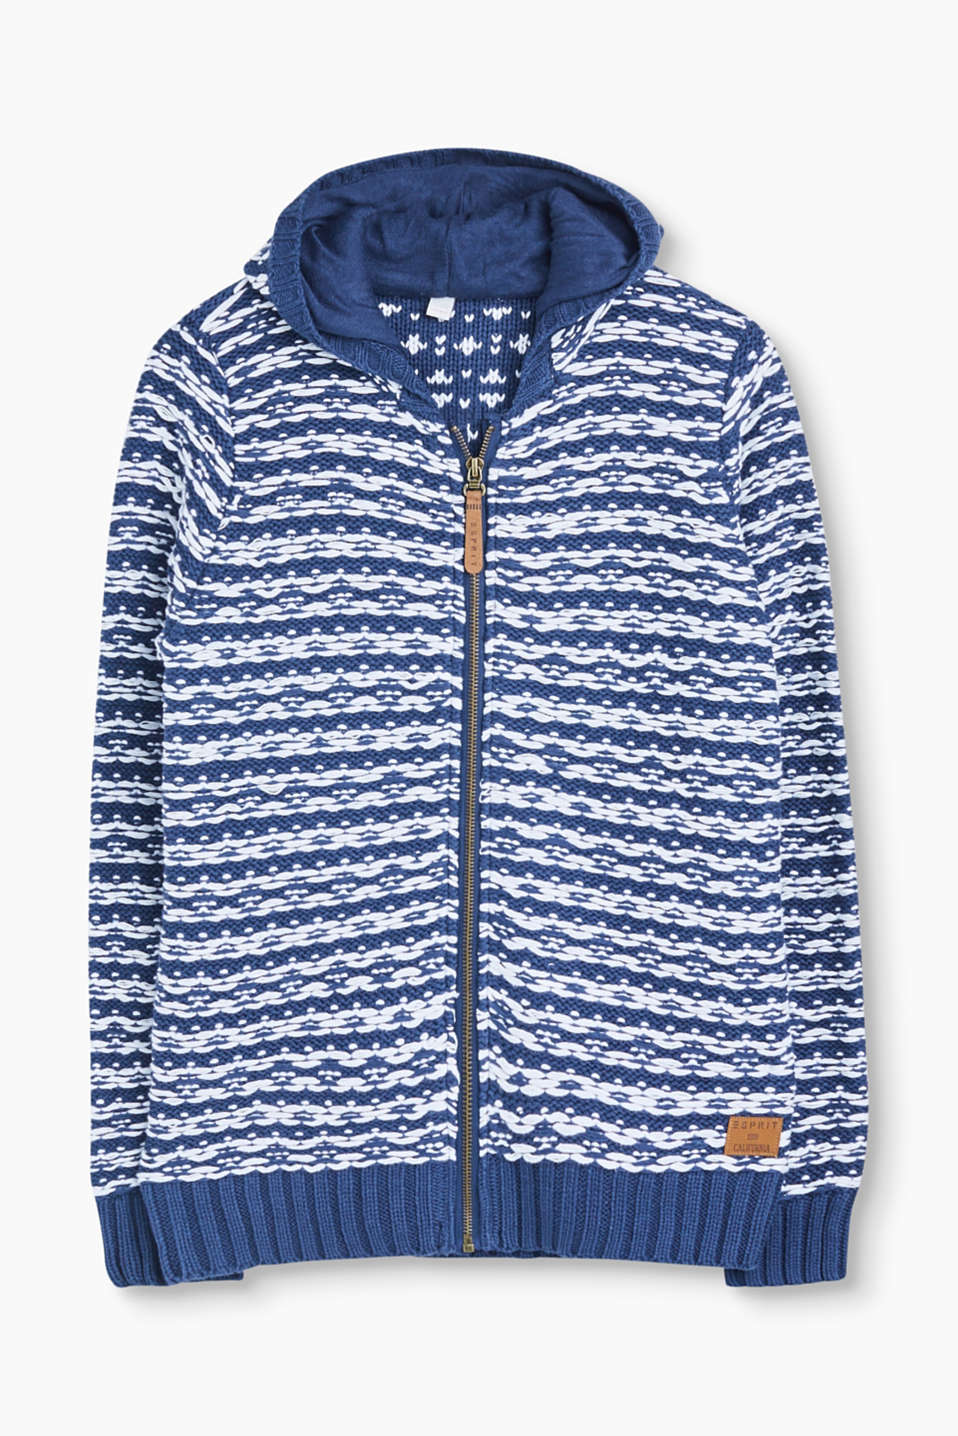 Esprit - Hooded cardigan in blended cotton